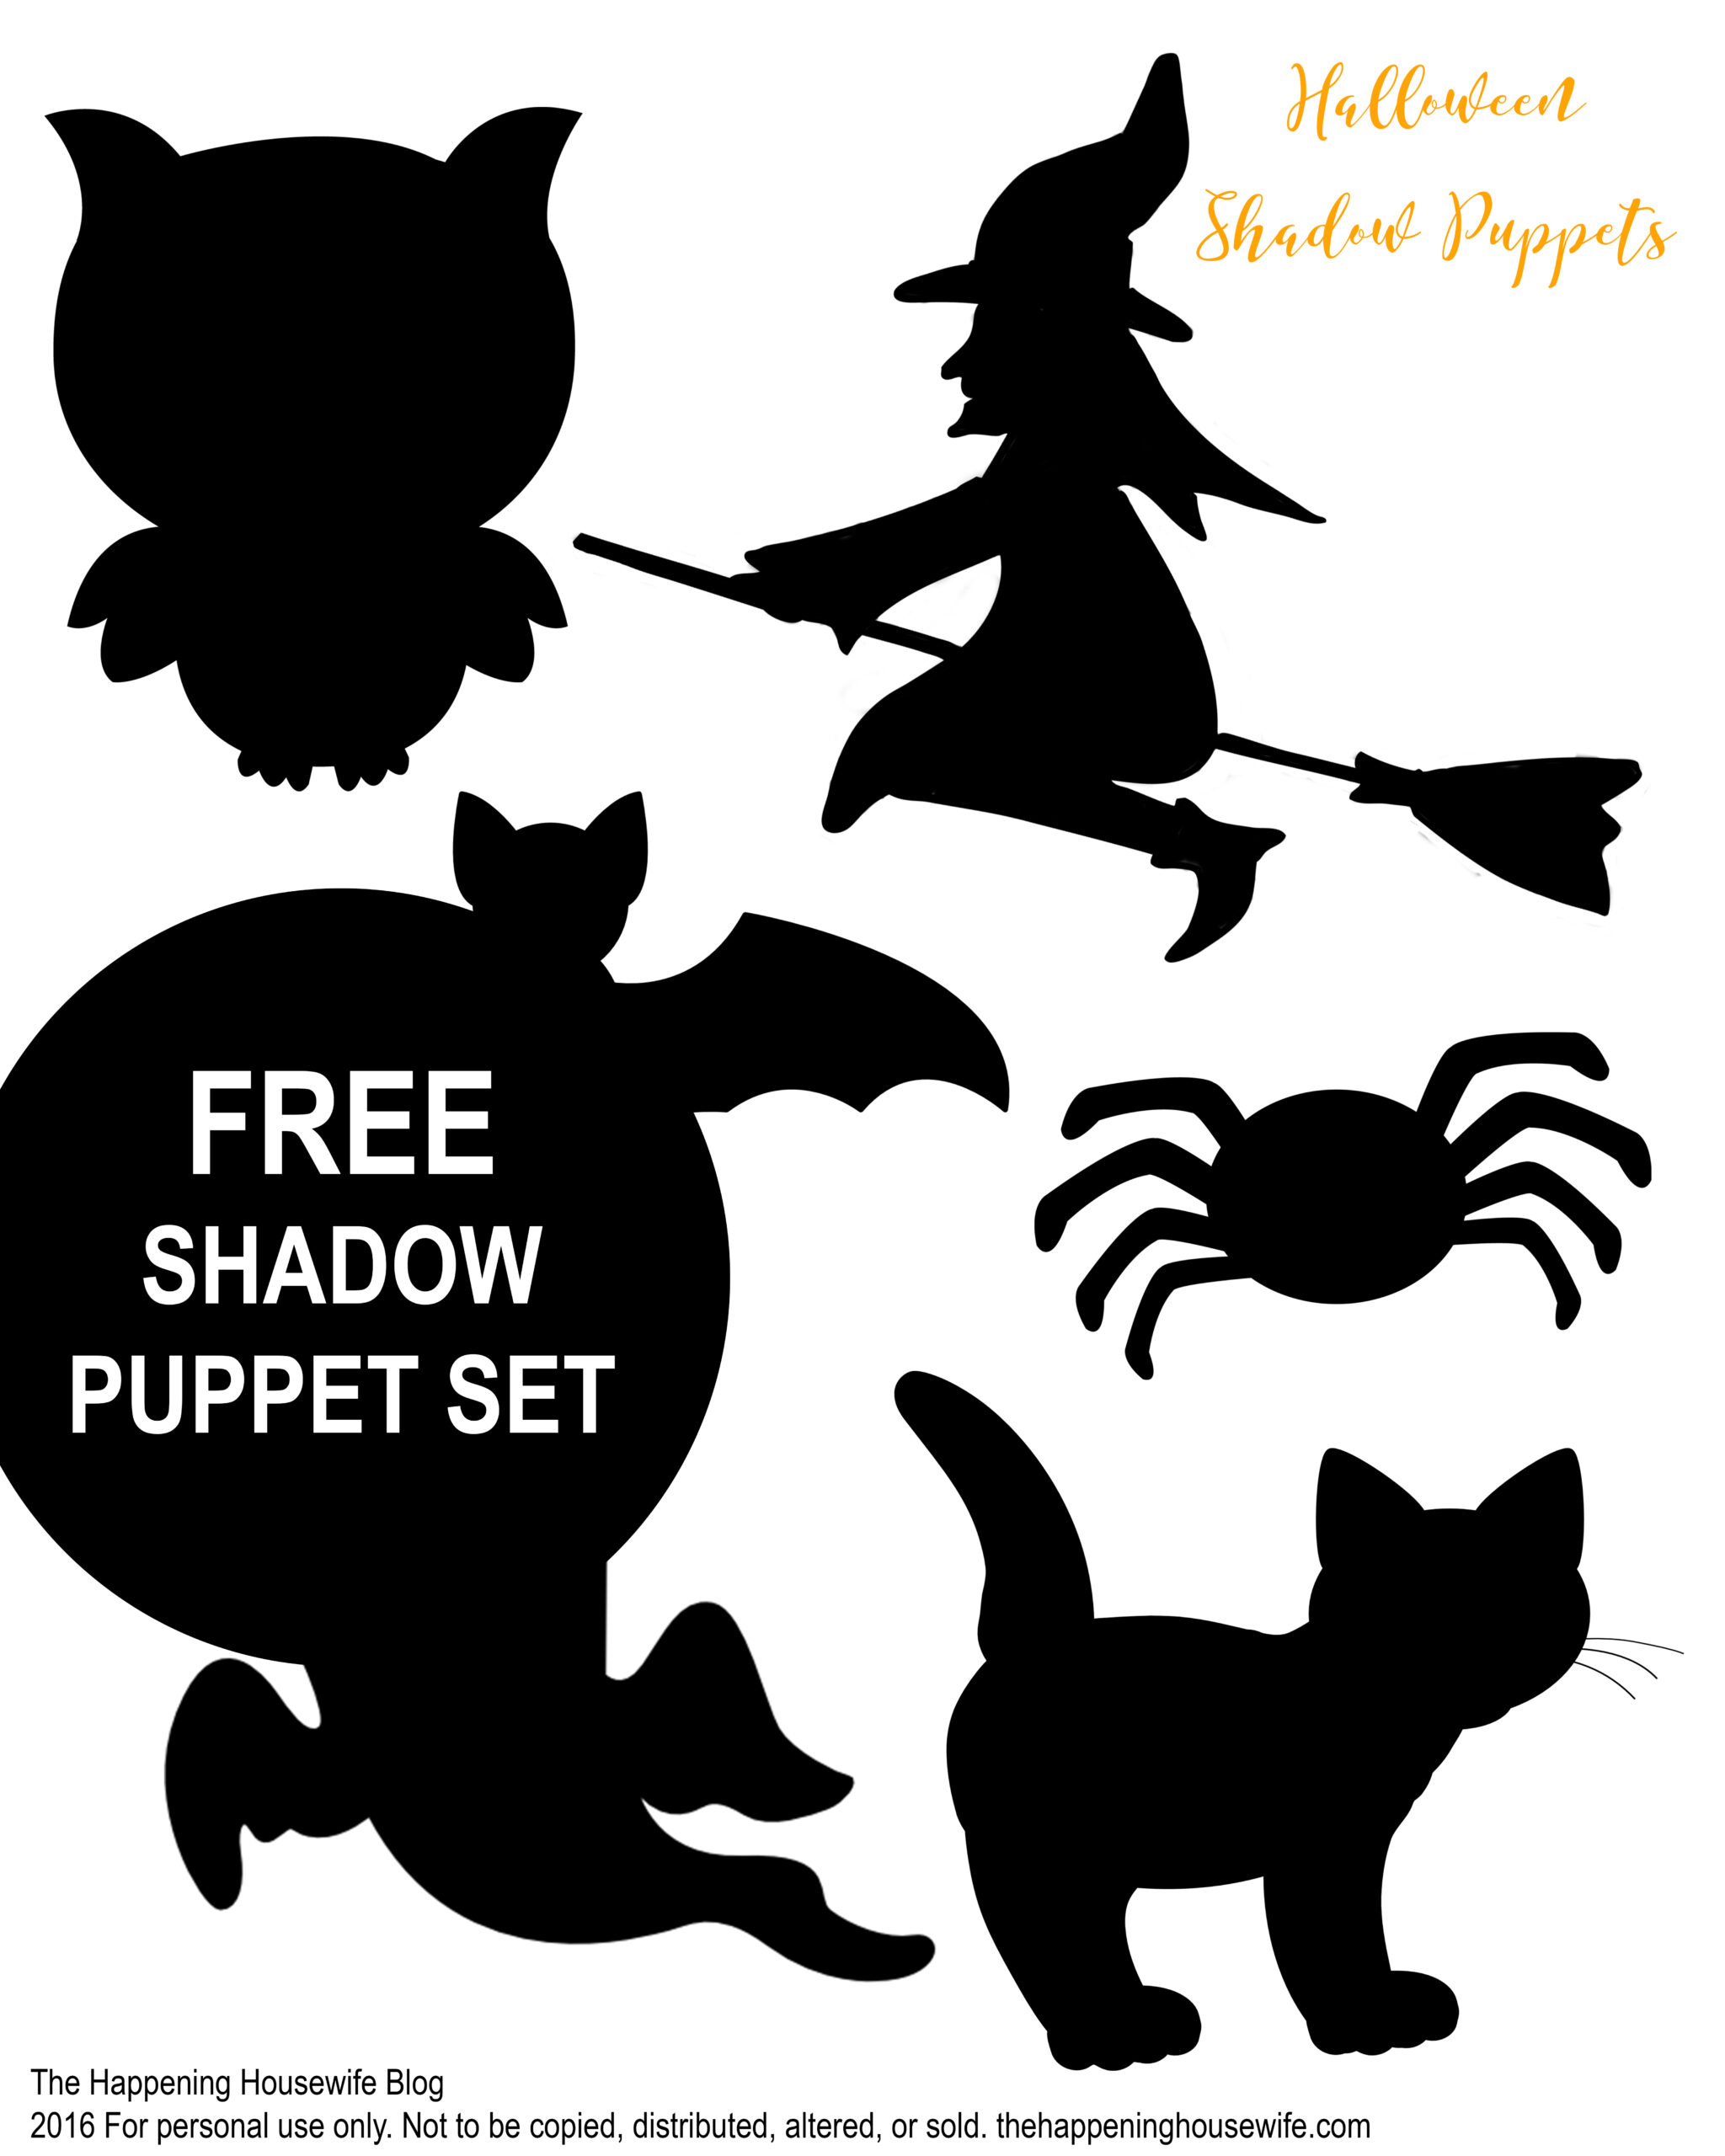 Halloween Shadow Puppets.jpg